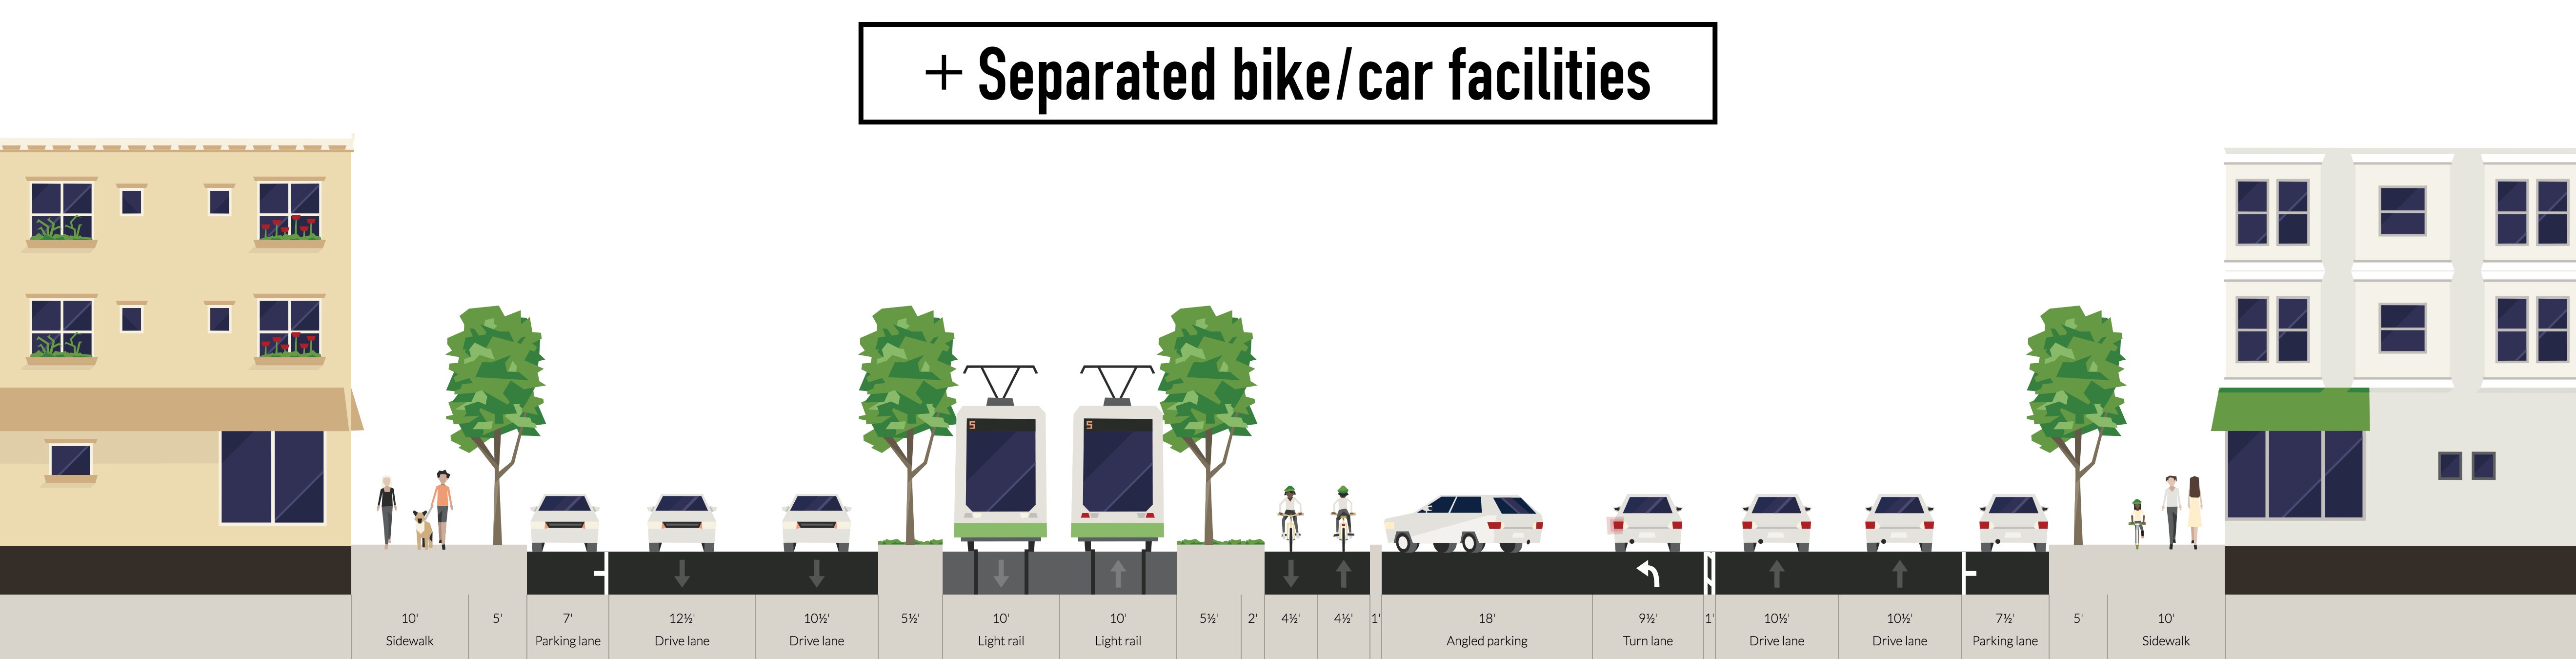 Remixed cross-section: + Separated bike/car facilities